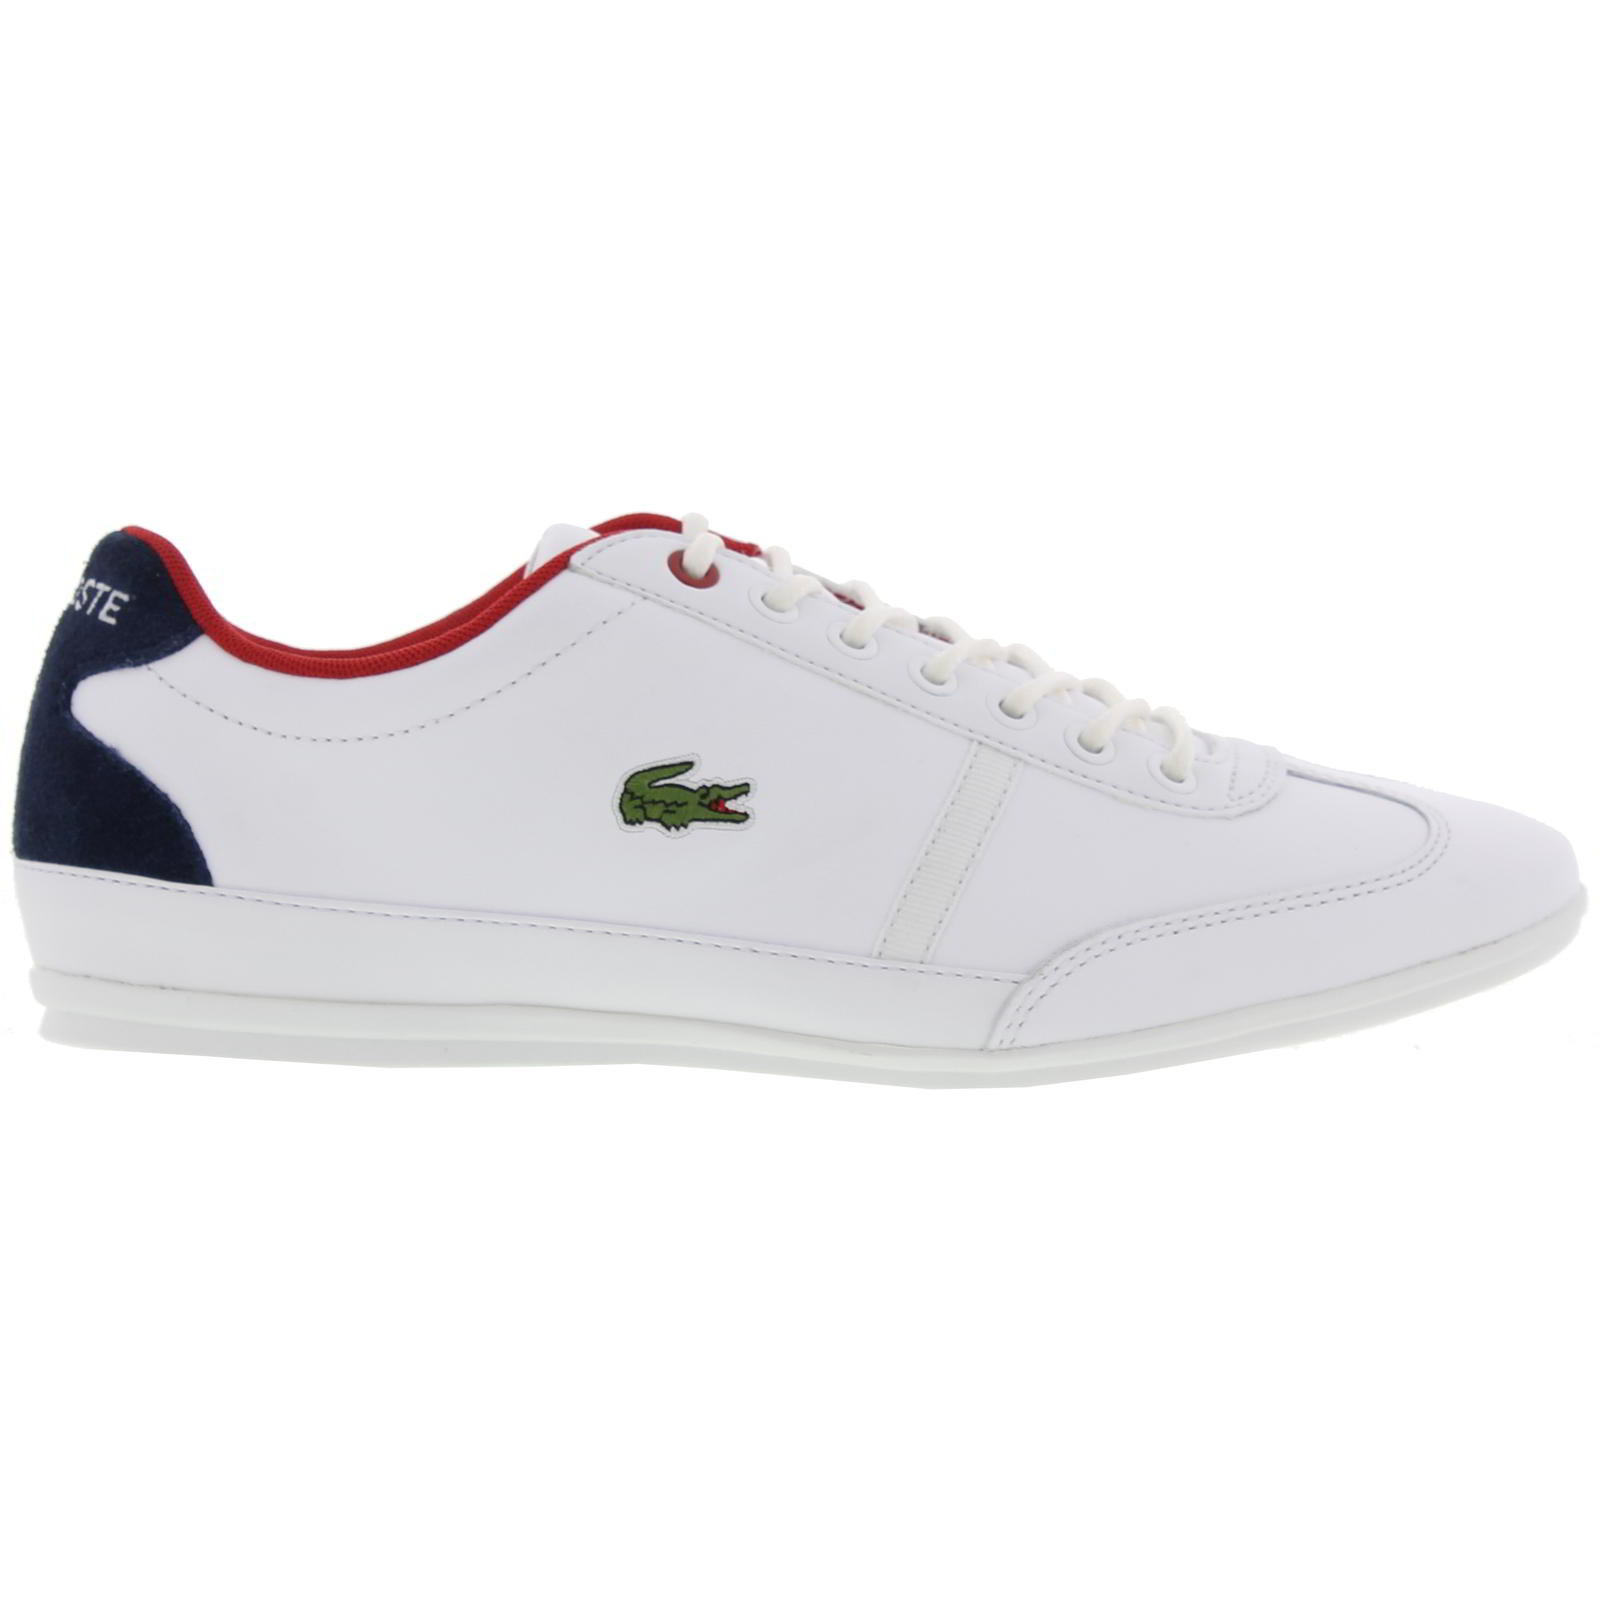 770abaa90e03 Details about Lacoste Misano Sport 317 1 Mens White Leather Trainers Shoes  Size UK 7-12